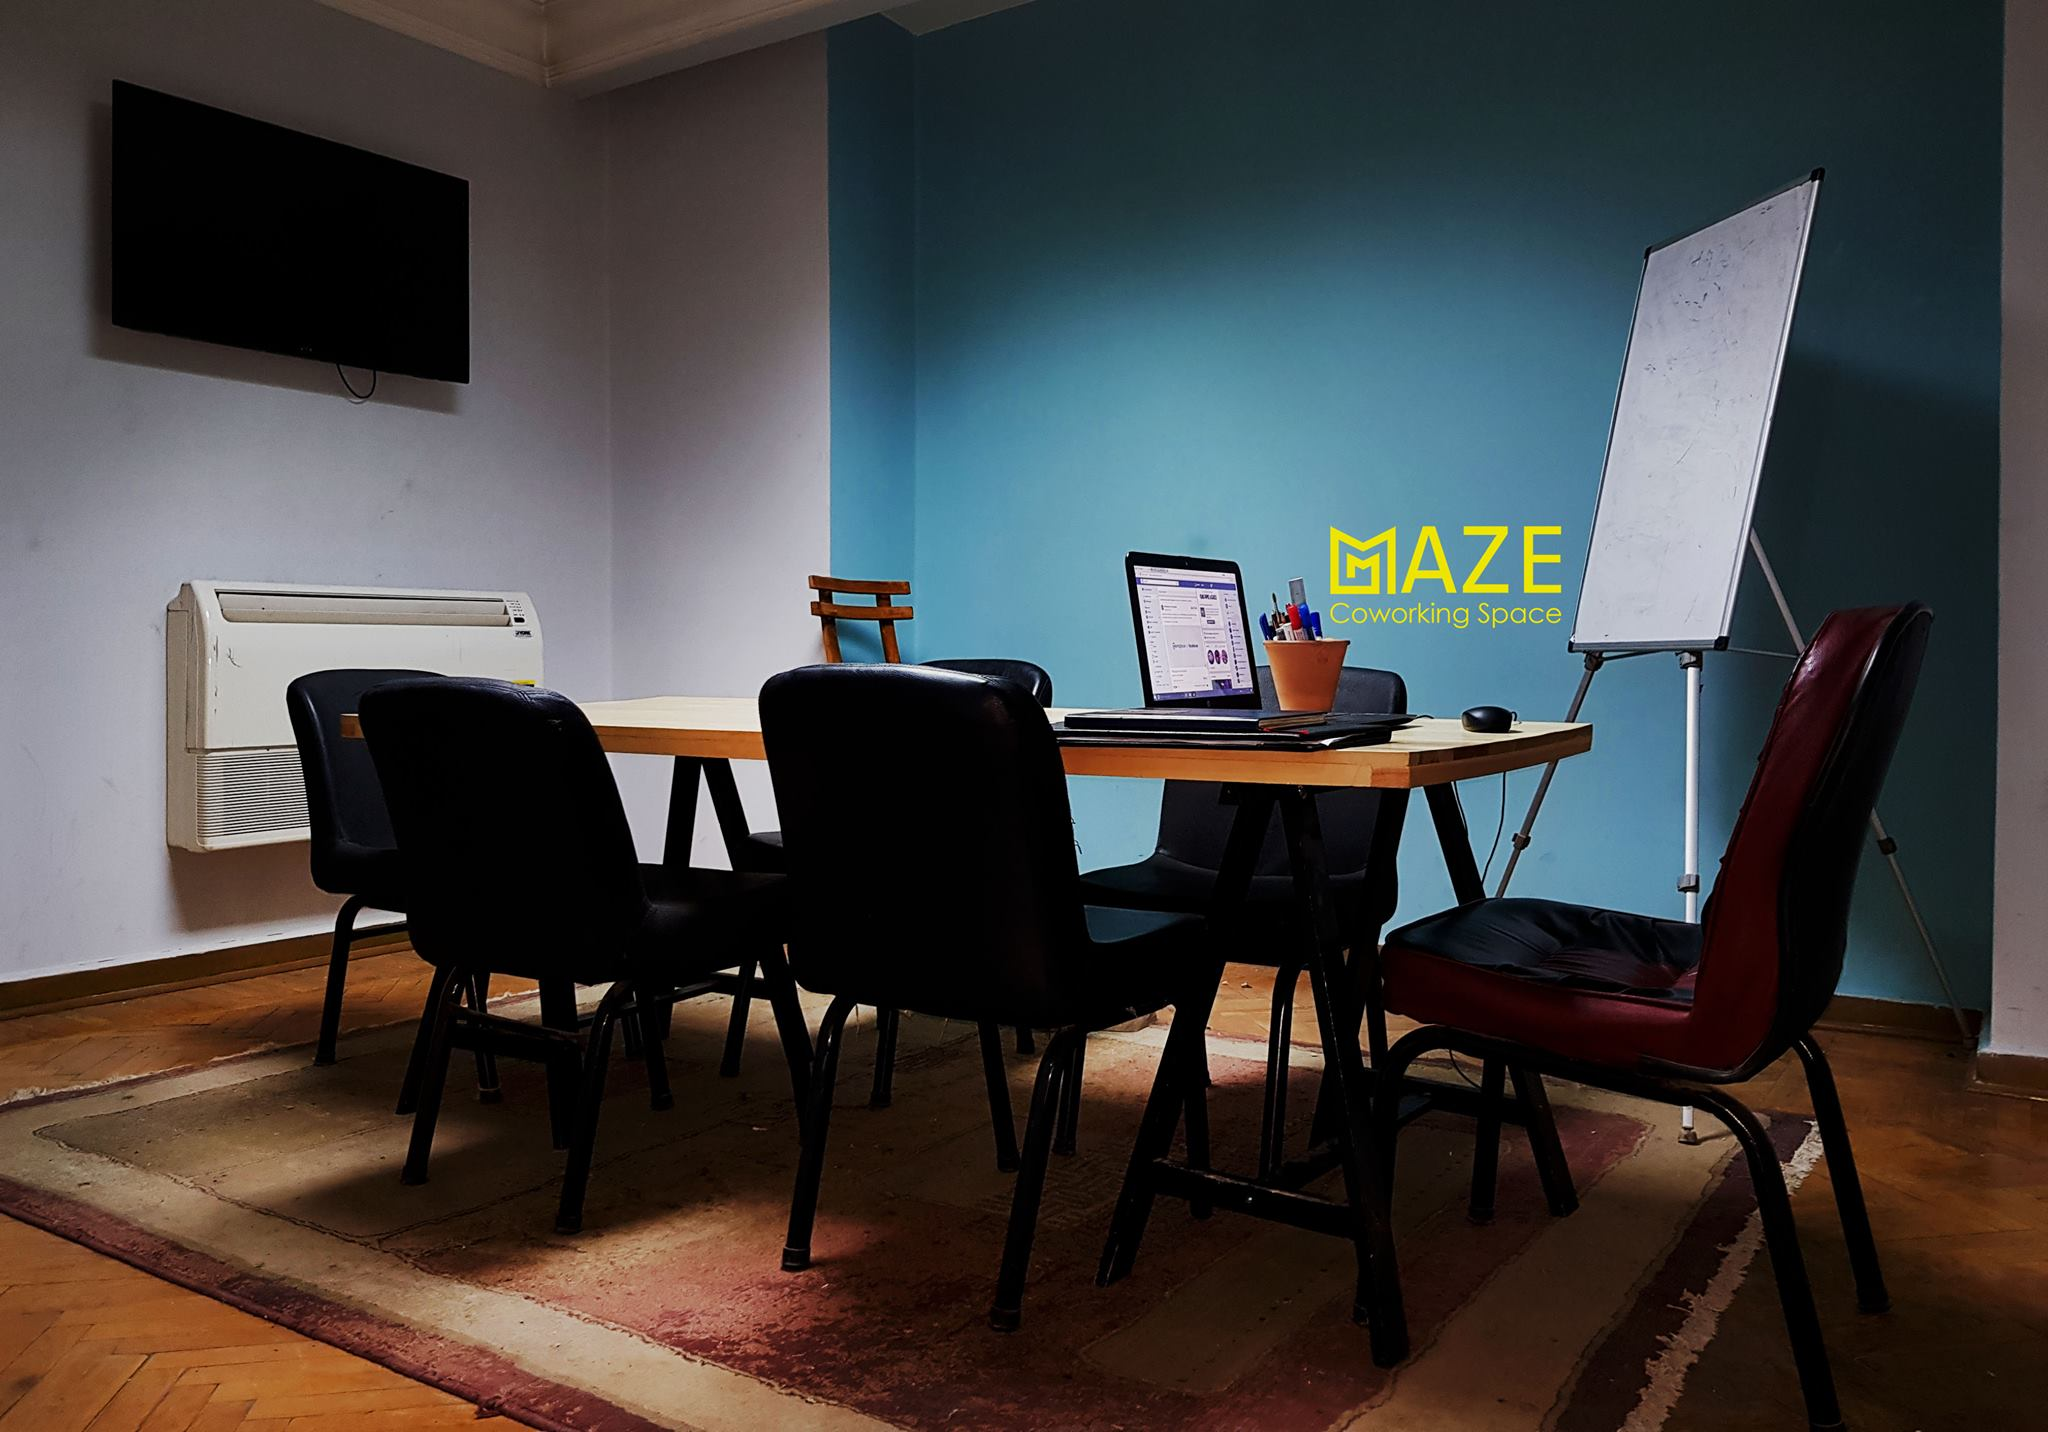 Salon Space Rennes Maze Coworking Space Giza Read Reviews Book Online